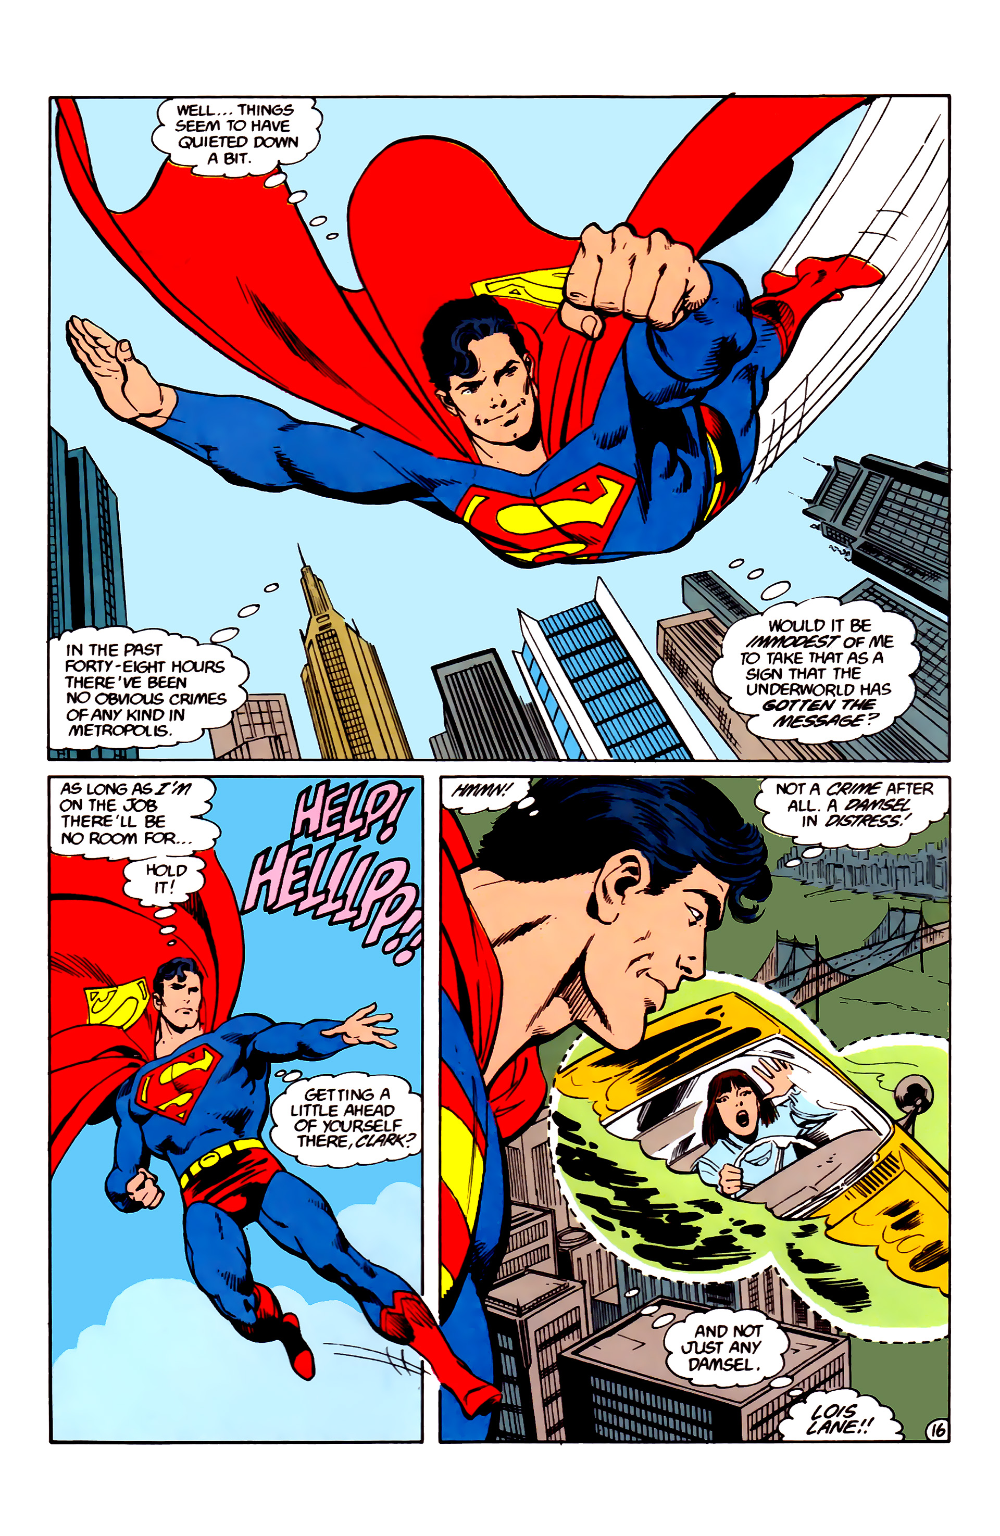 The Man Of Steel 1986 Issue 2 Read The Man Of Steel 1986 Issue 2 Comic Online In High Quality Comics Superman Comic Man Of Steel